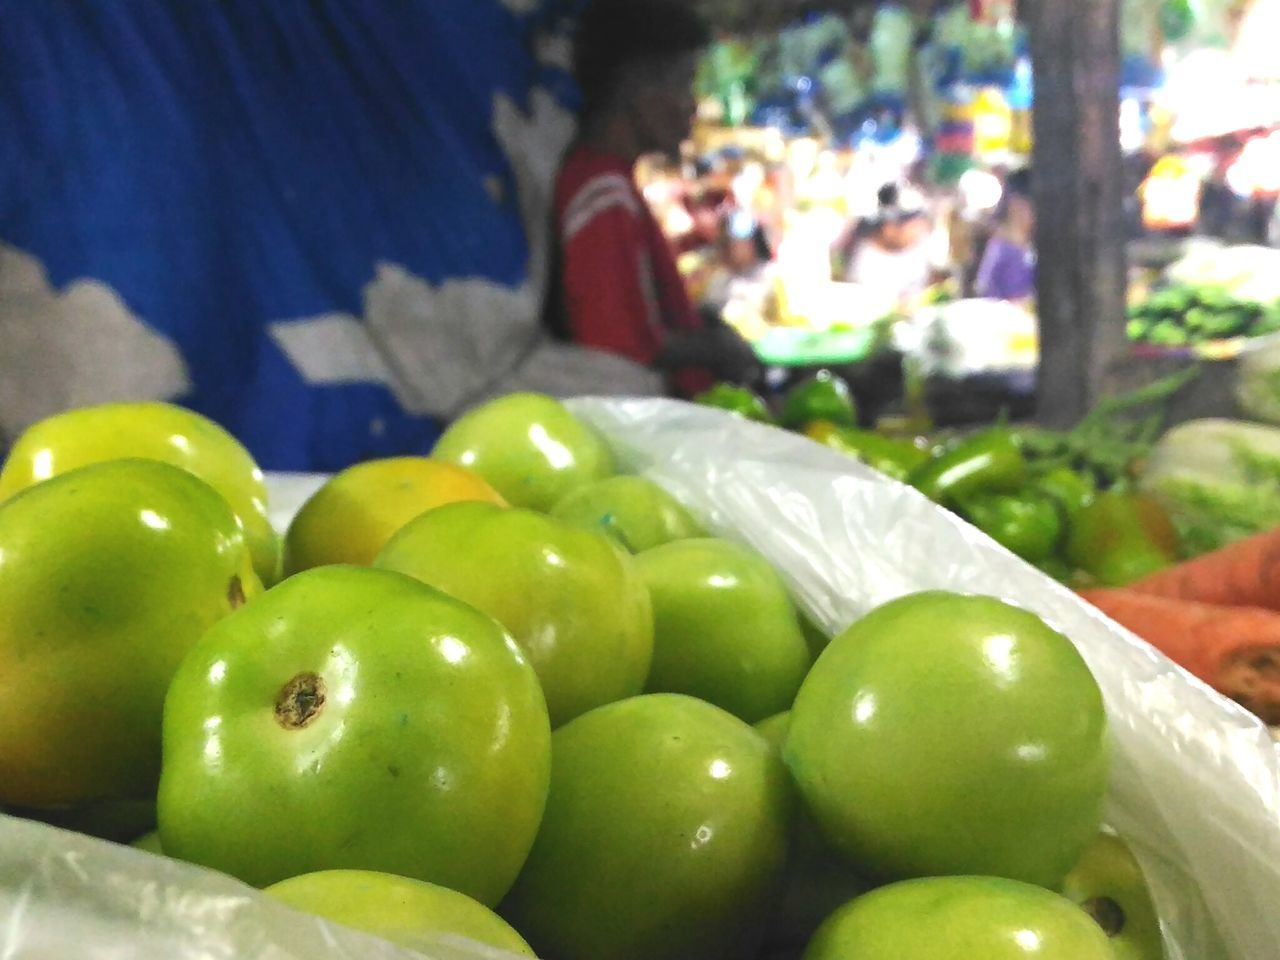 Focus Object Food Freshness Focus On Foreground Market For Sale Green Color Tomatoes🍅🍅 Green Tomatoes